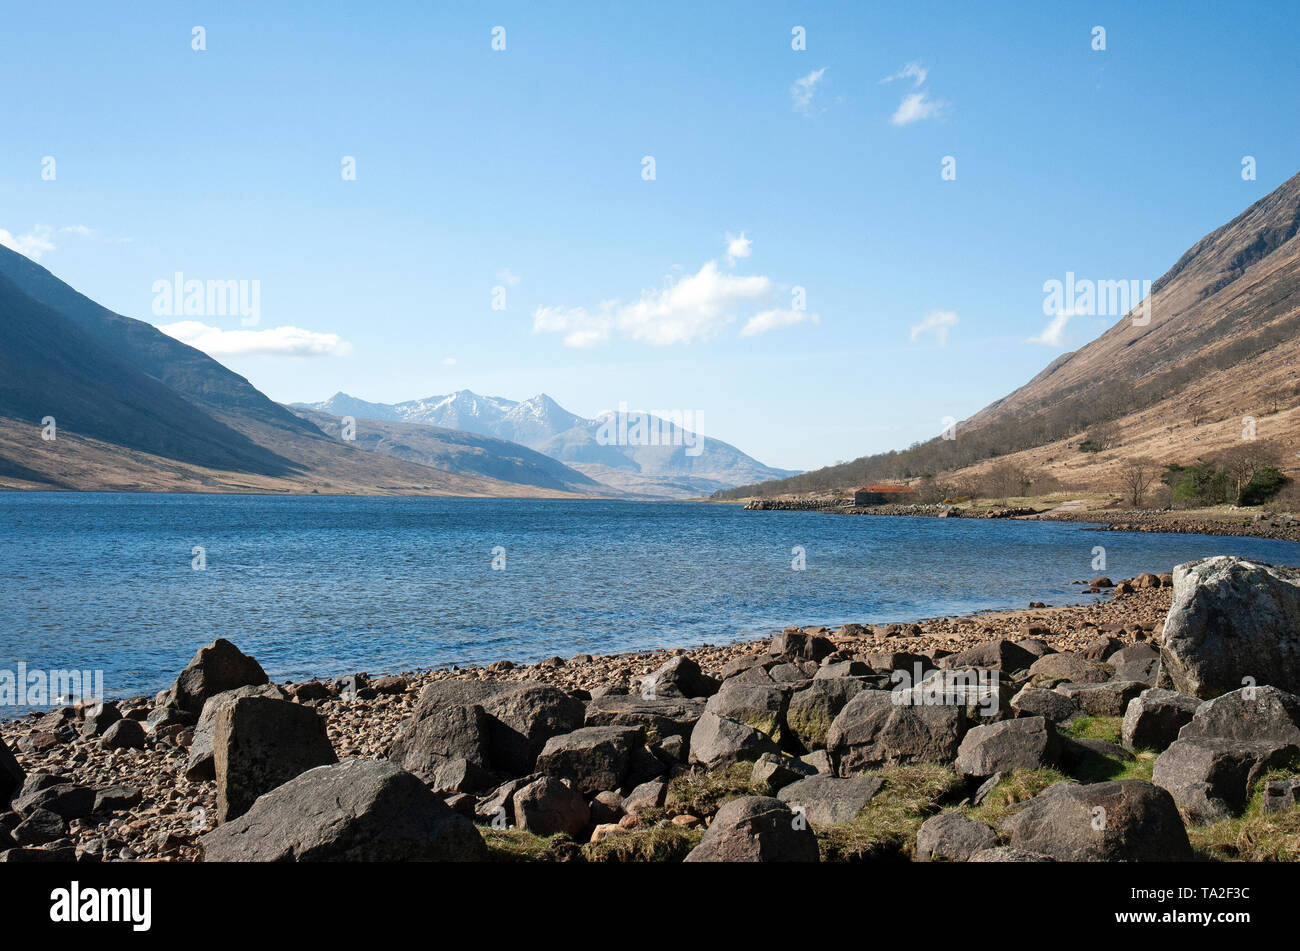 This sea loch runs for 31km from Glen Etive at the head of Loch Etive, beyond the snowcapped Ben Cruachan in the distance, to Connel. - Stock Image